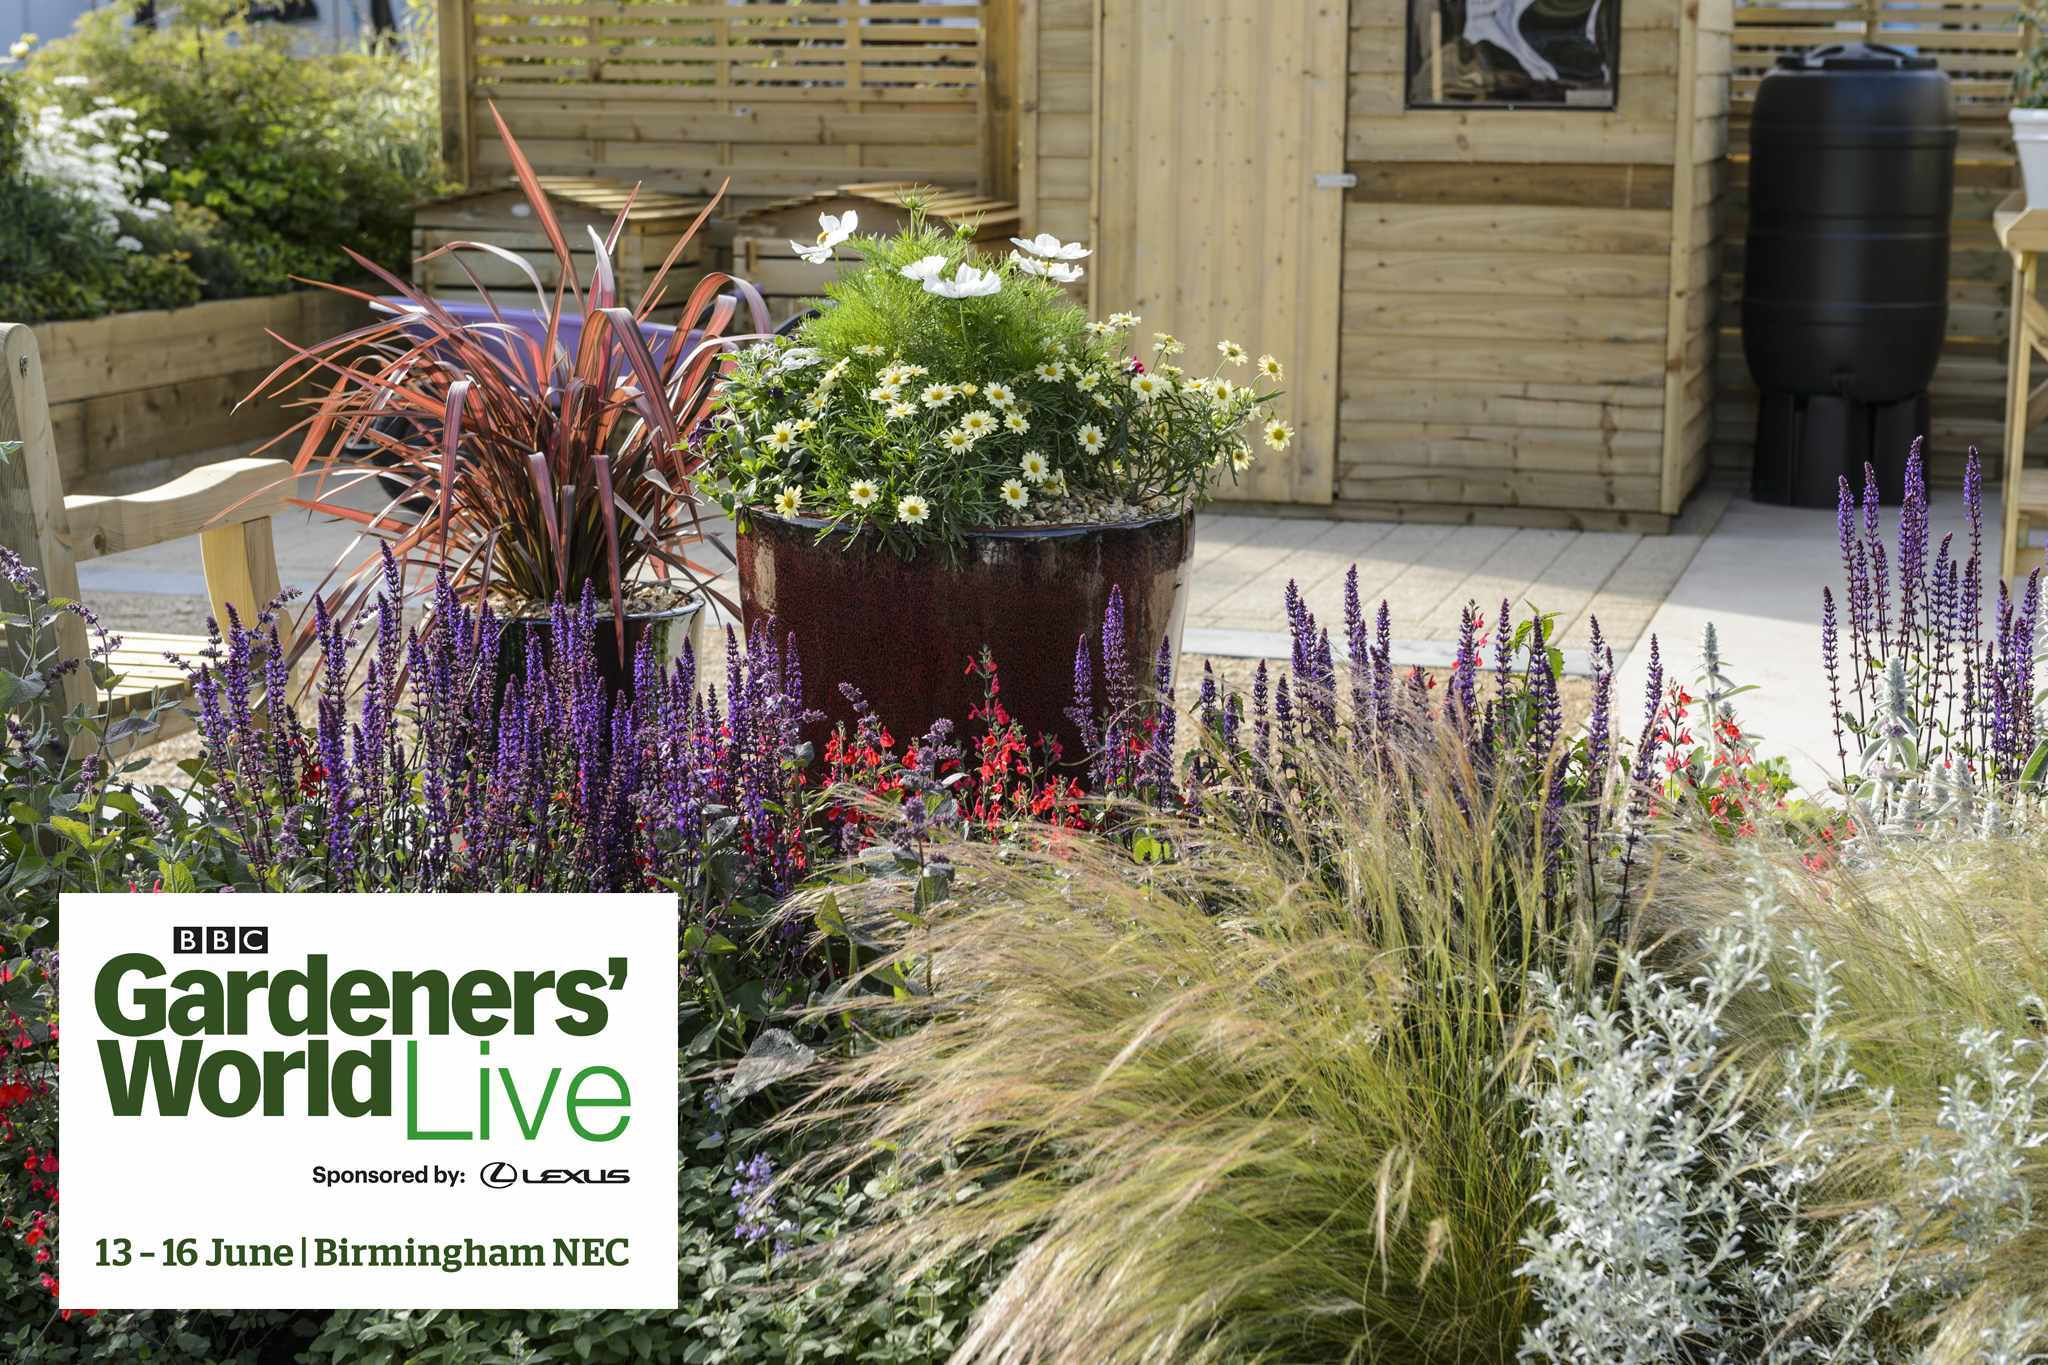 BBC Gardeners' World Live 2019